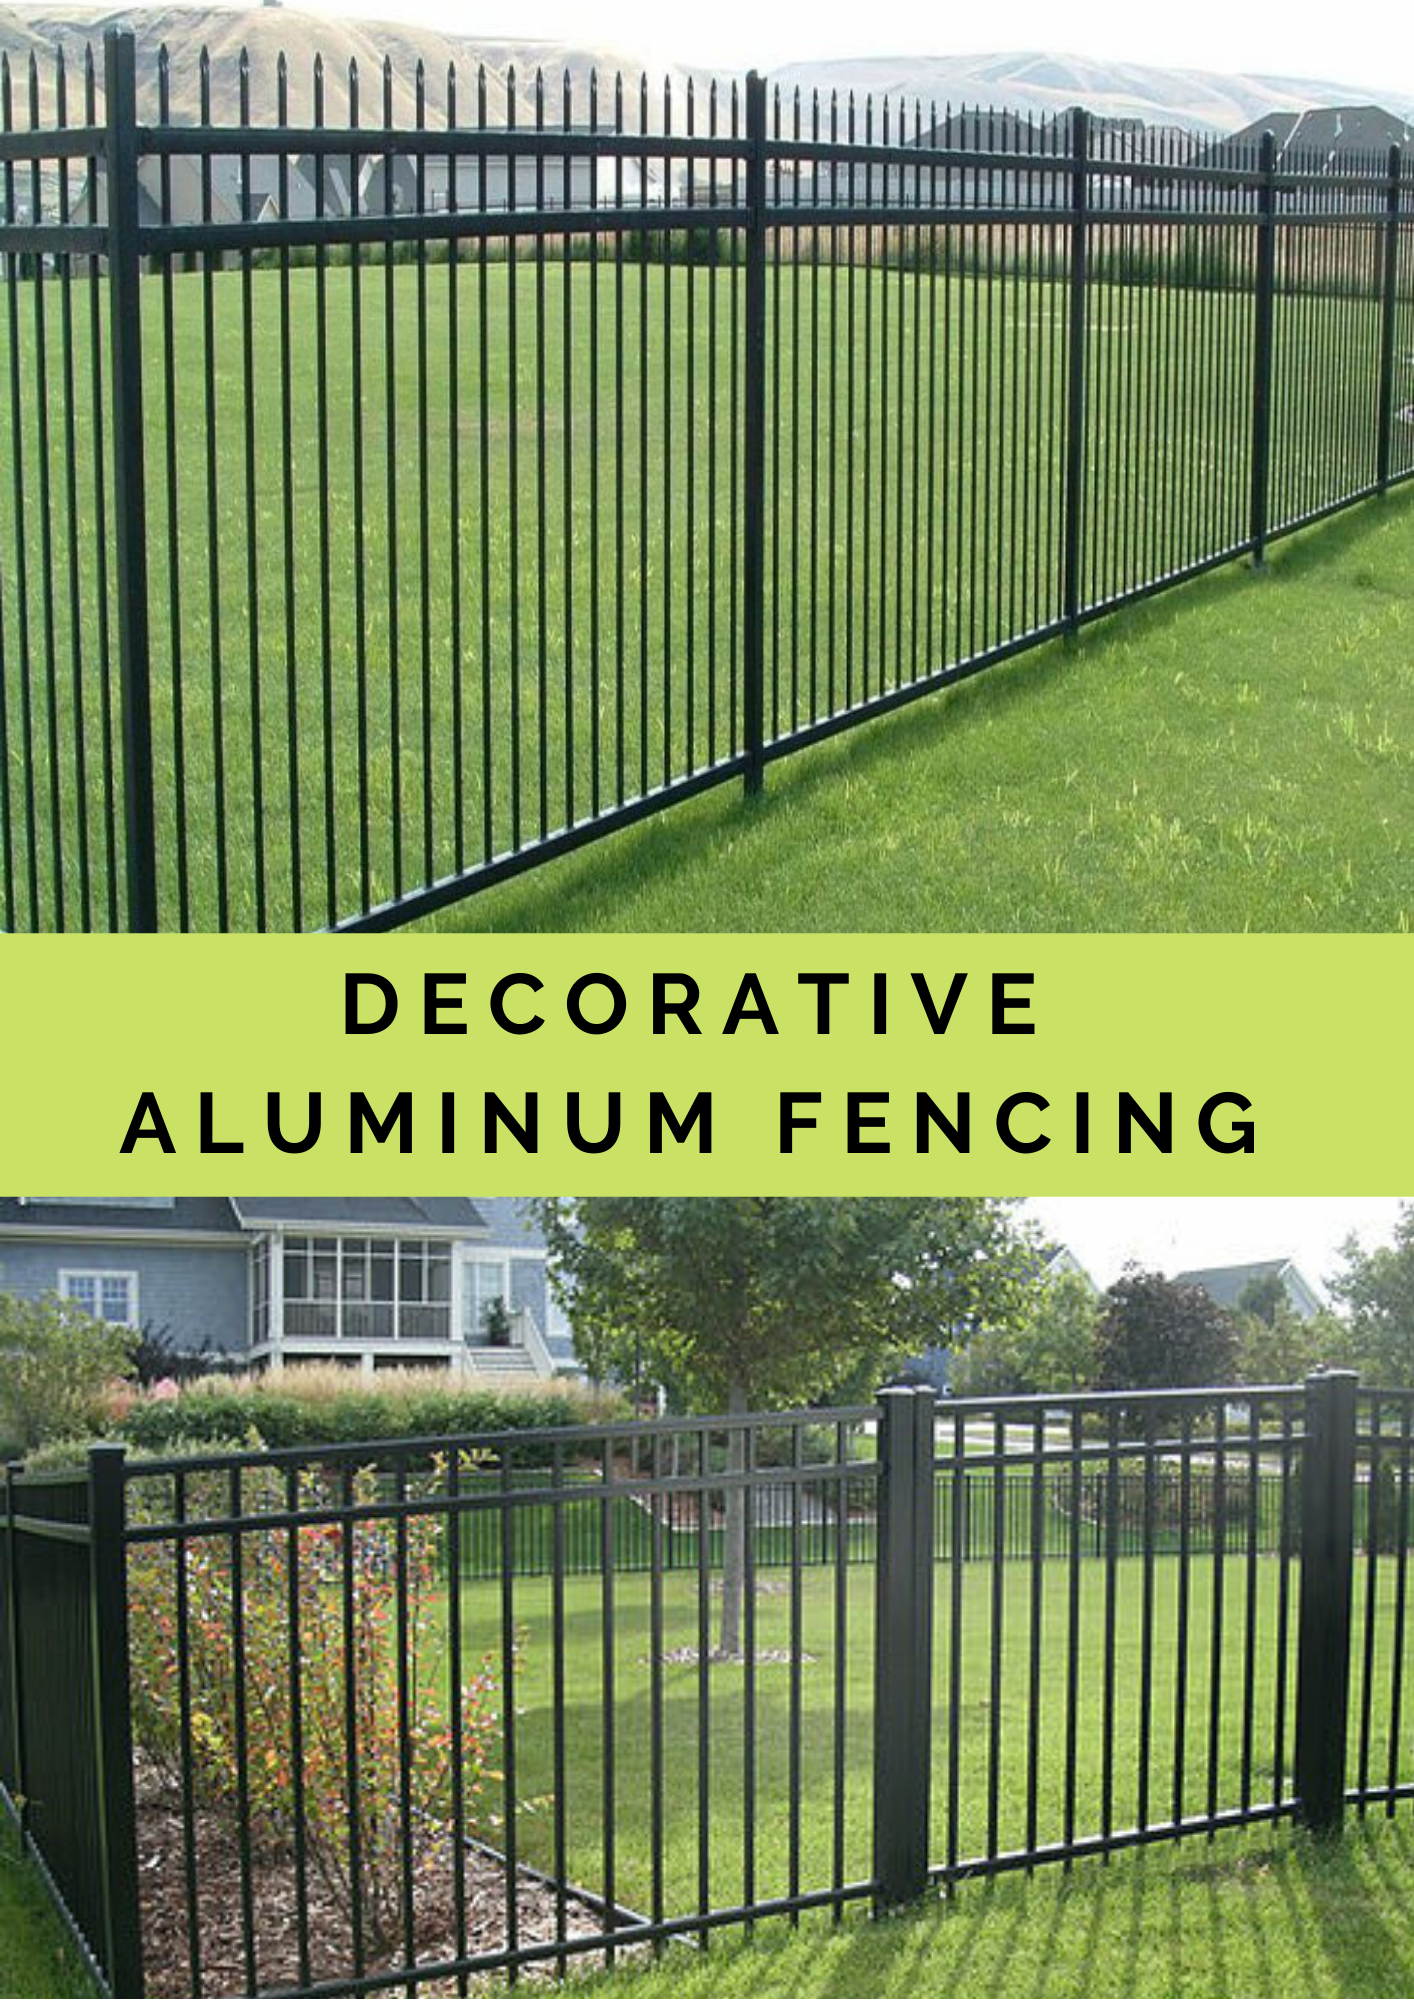 Why You Should Consider Decorative Aluminum Fencing Aluminum Fencing Wrought Iron Fences Iron Fence